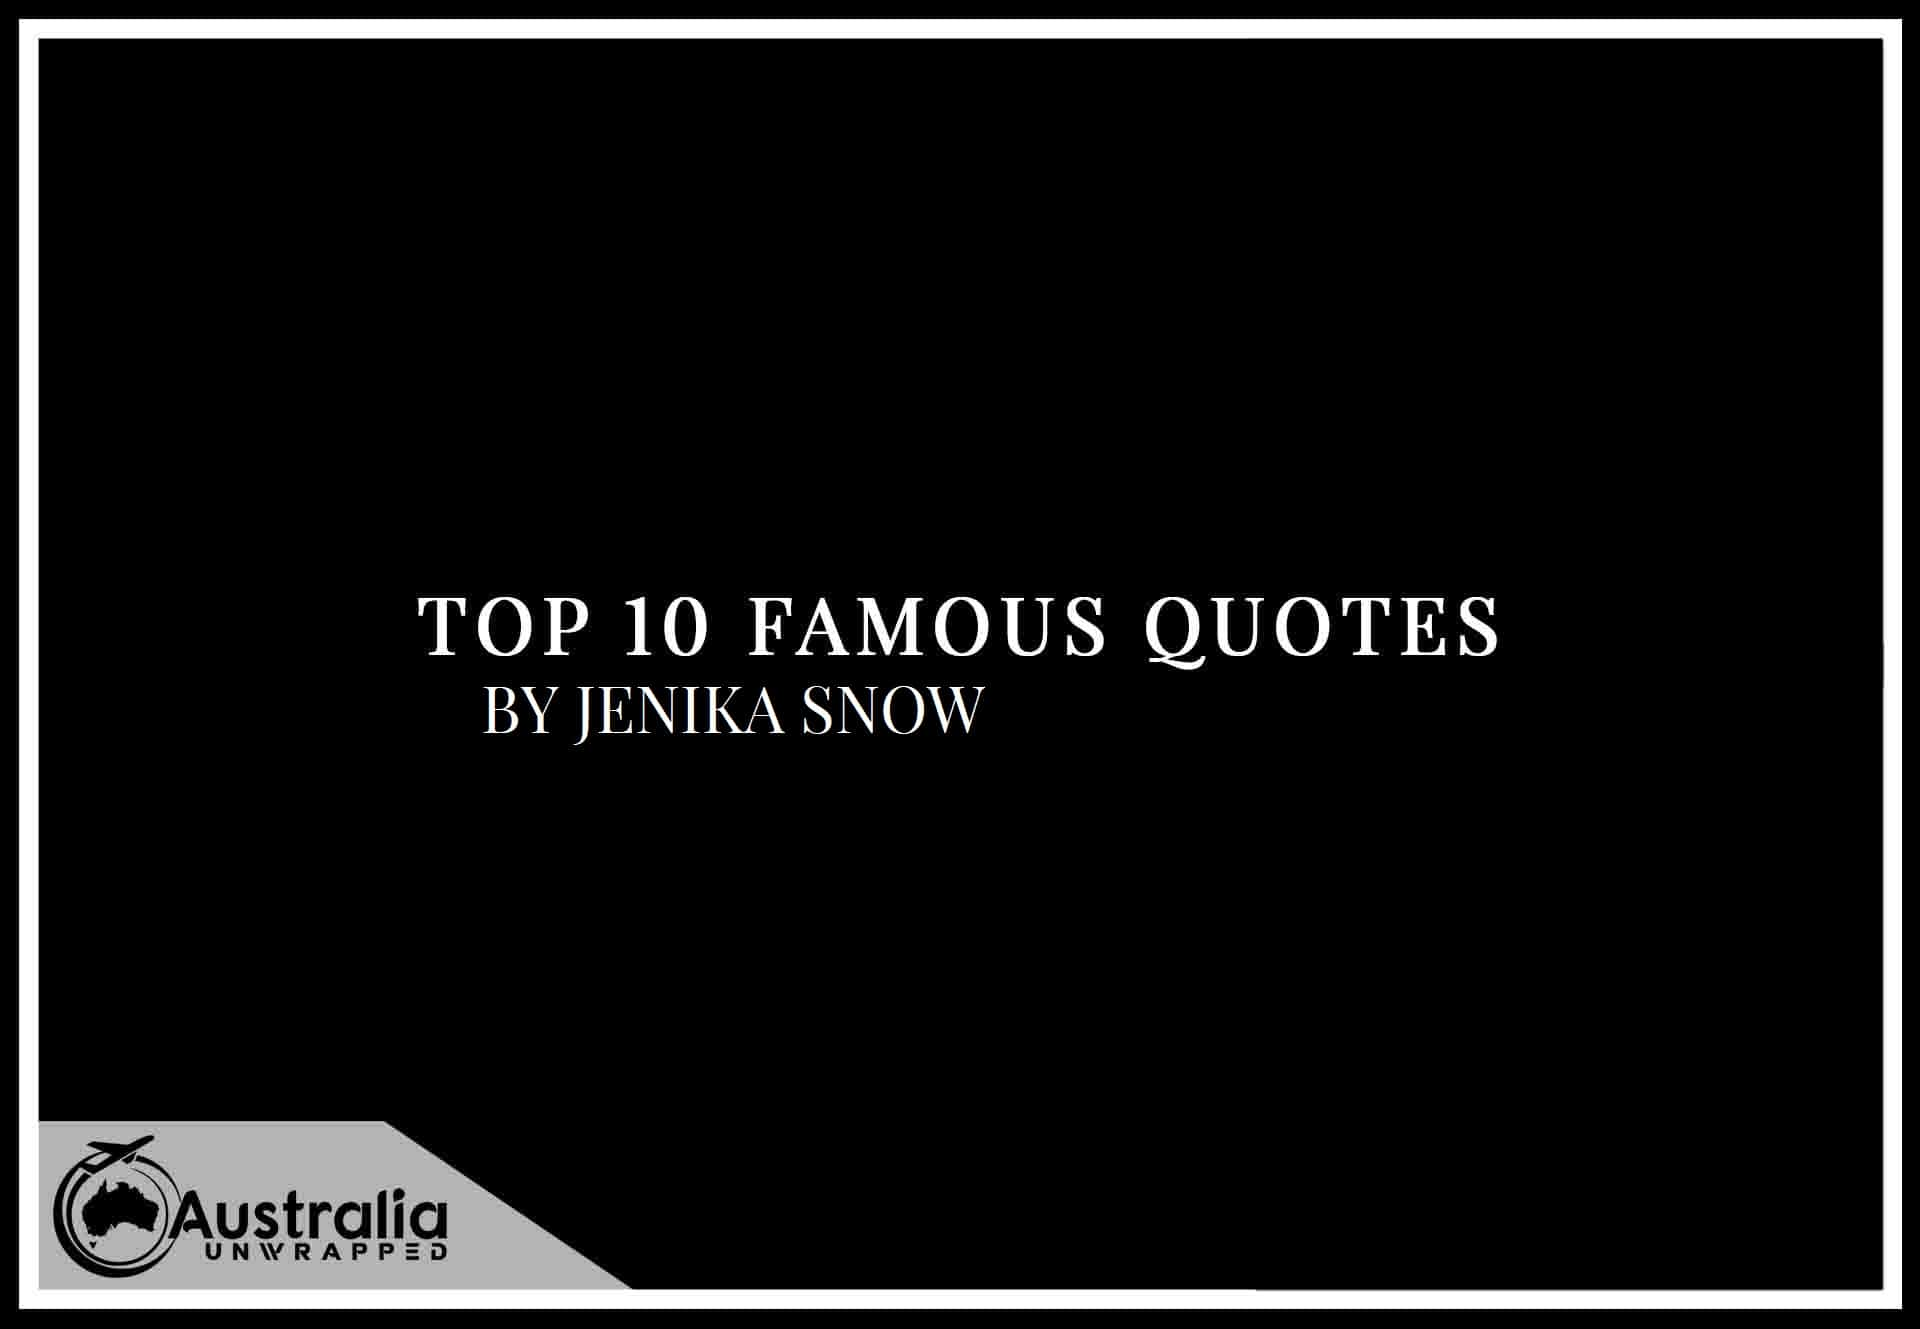 Top 10 Famous Quotes by Author Jenika Snow